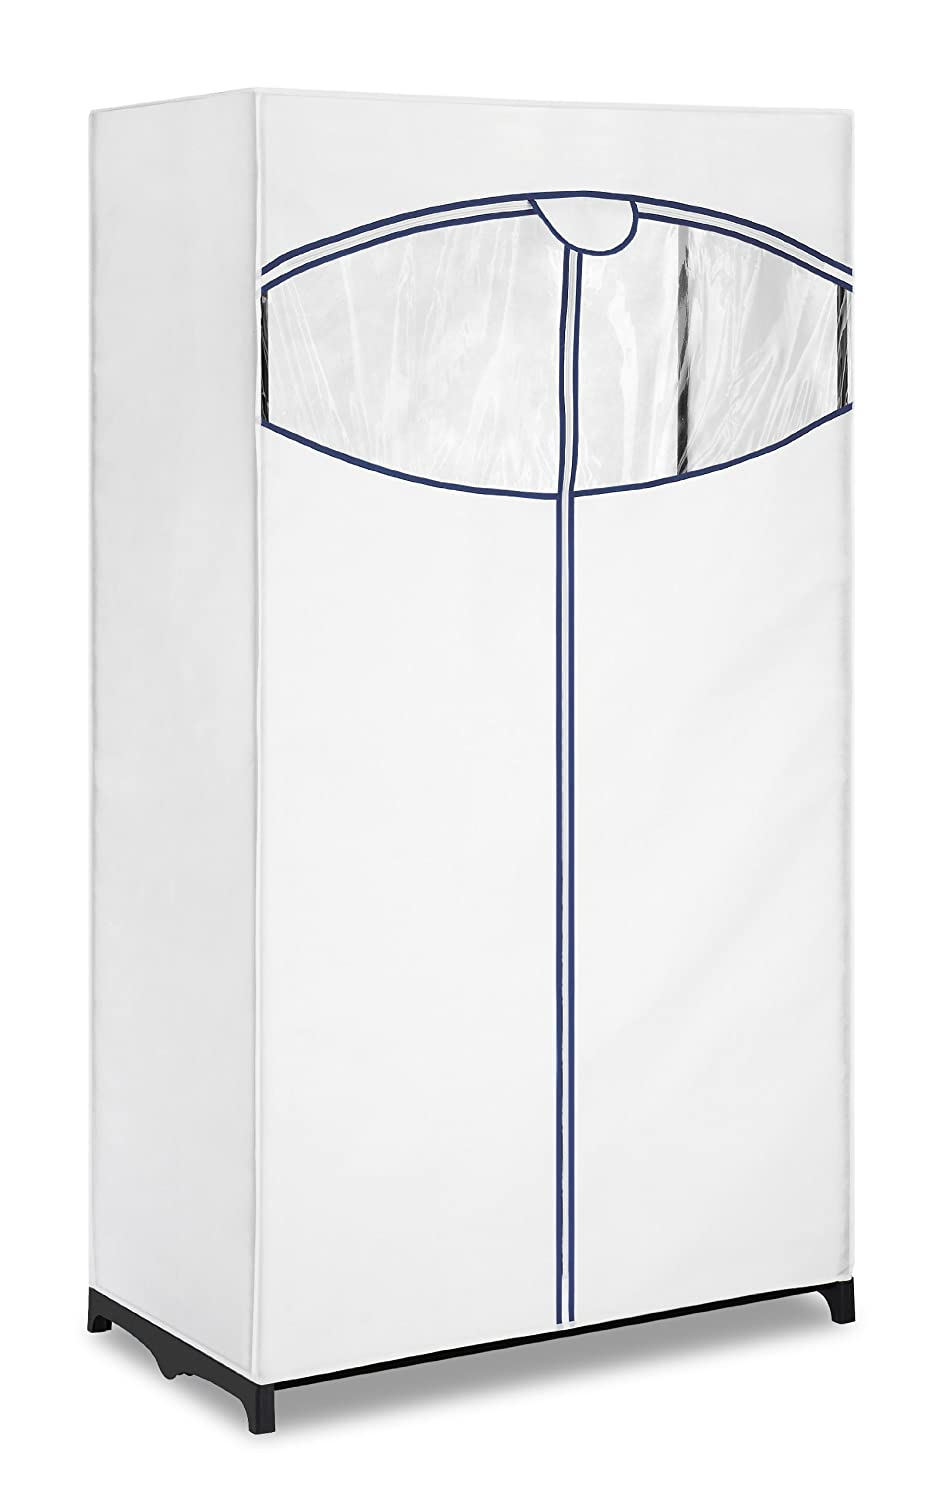 Amazon.com: Whitmor Clothes Closet With White Fabric Cover: Home U0026 Kitchen